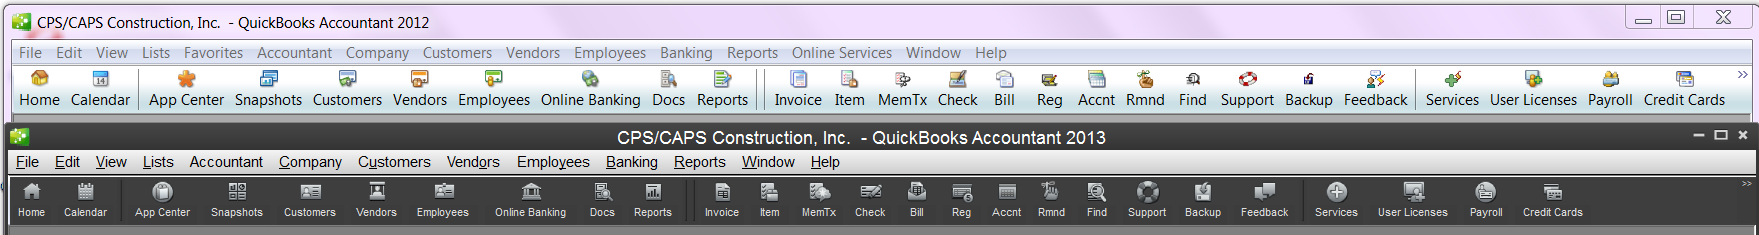 comparing the top icon bar of QuickBooks 2012 and 2013